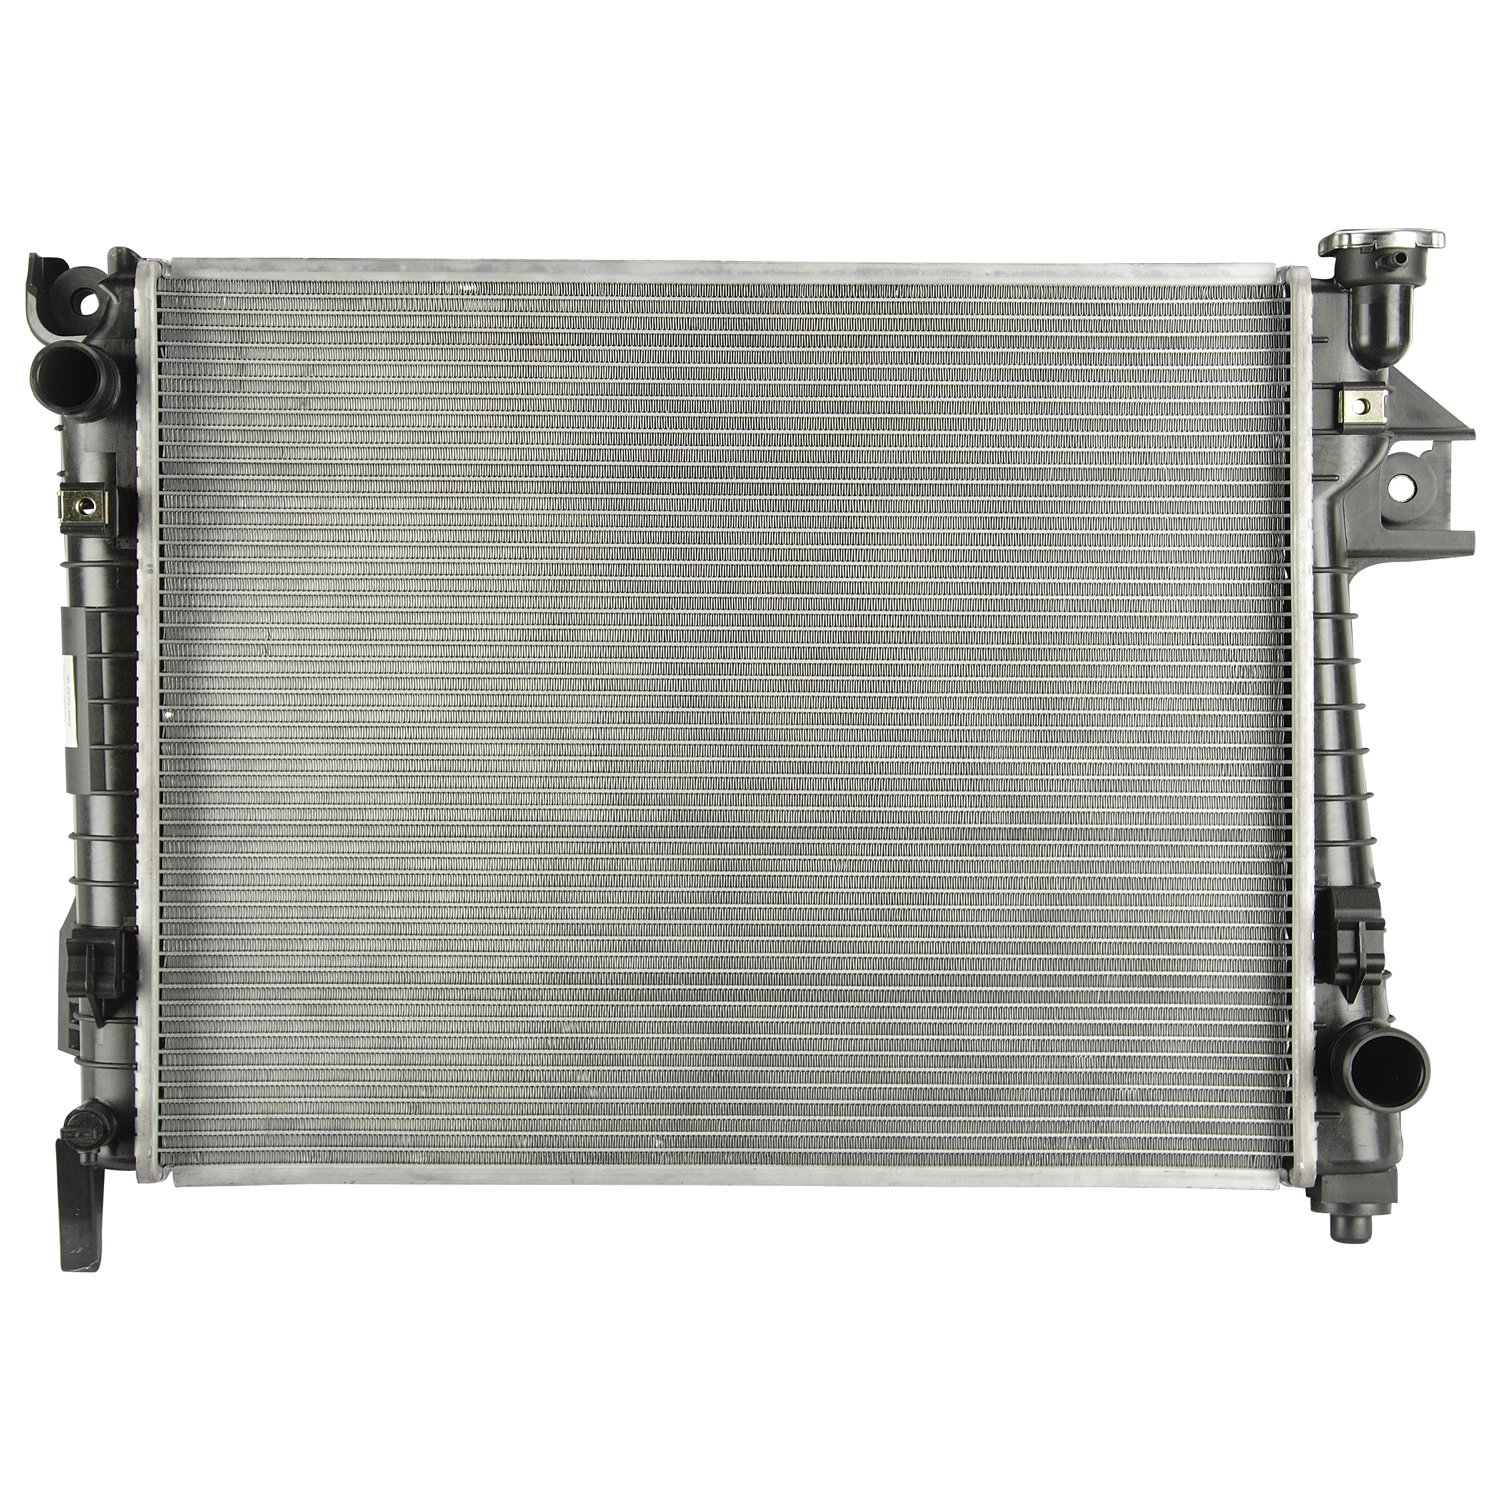 Dodge Radiator Autopartswarehouse: Radiator Auto Radiator Car Radiator Autopartswarehouse